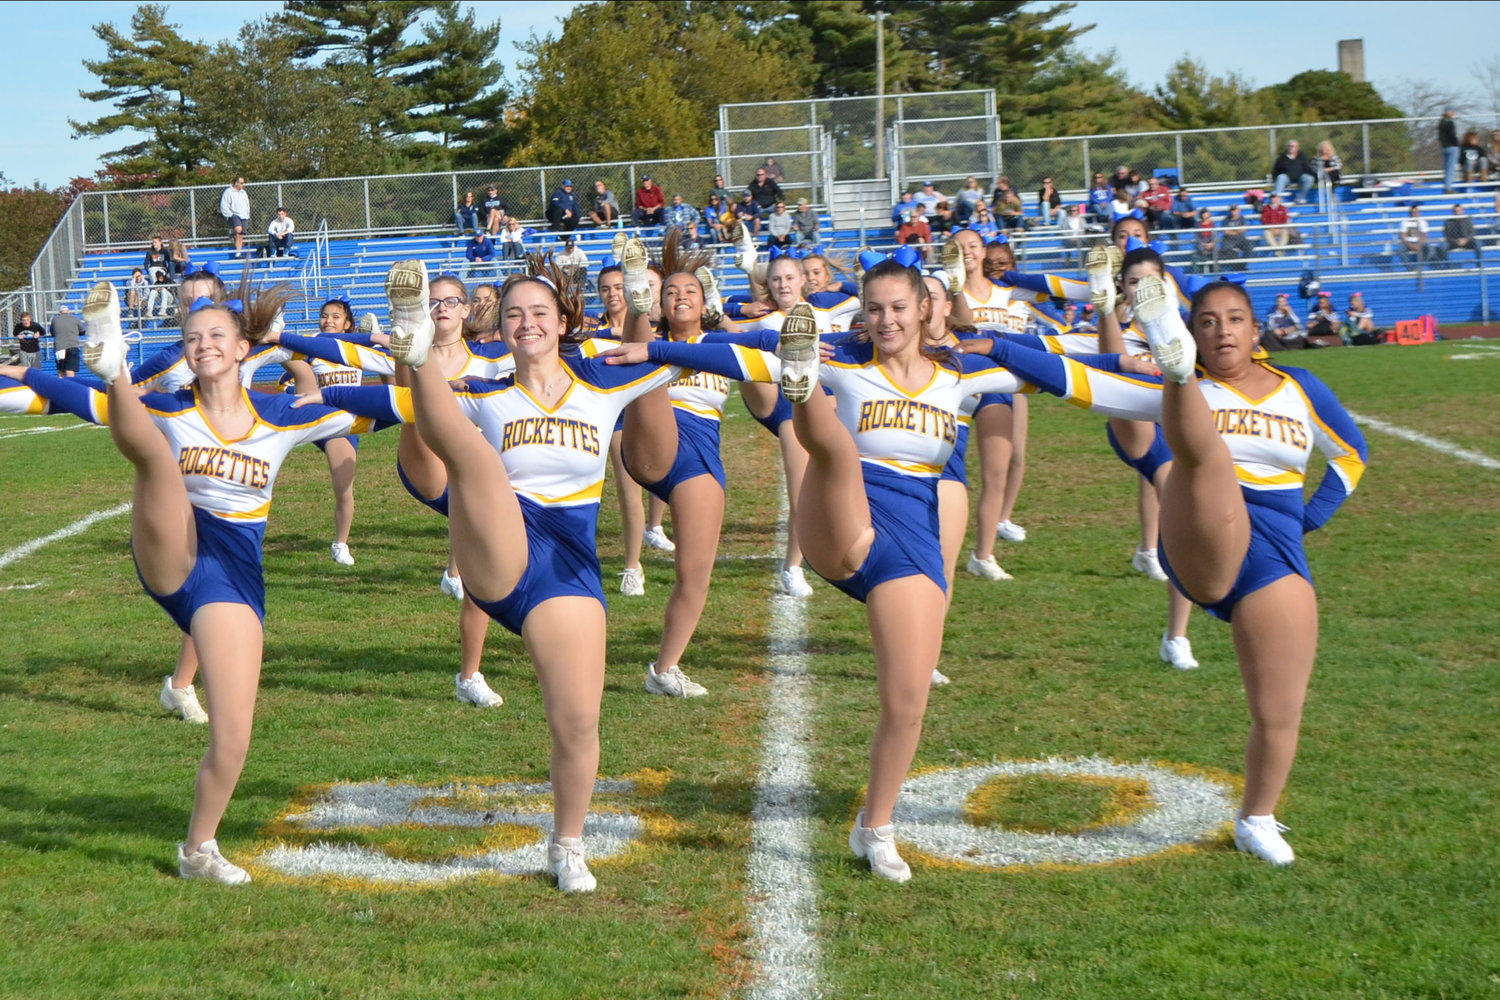 The East Meadow Rockettes performed their routine for a festive halftime show.